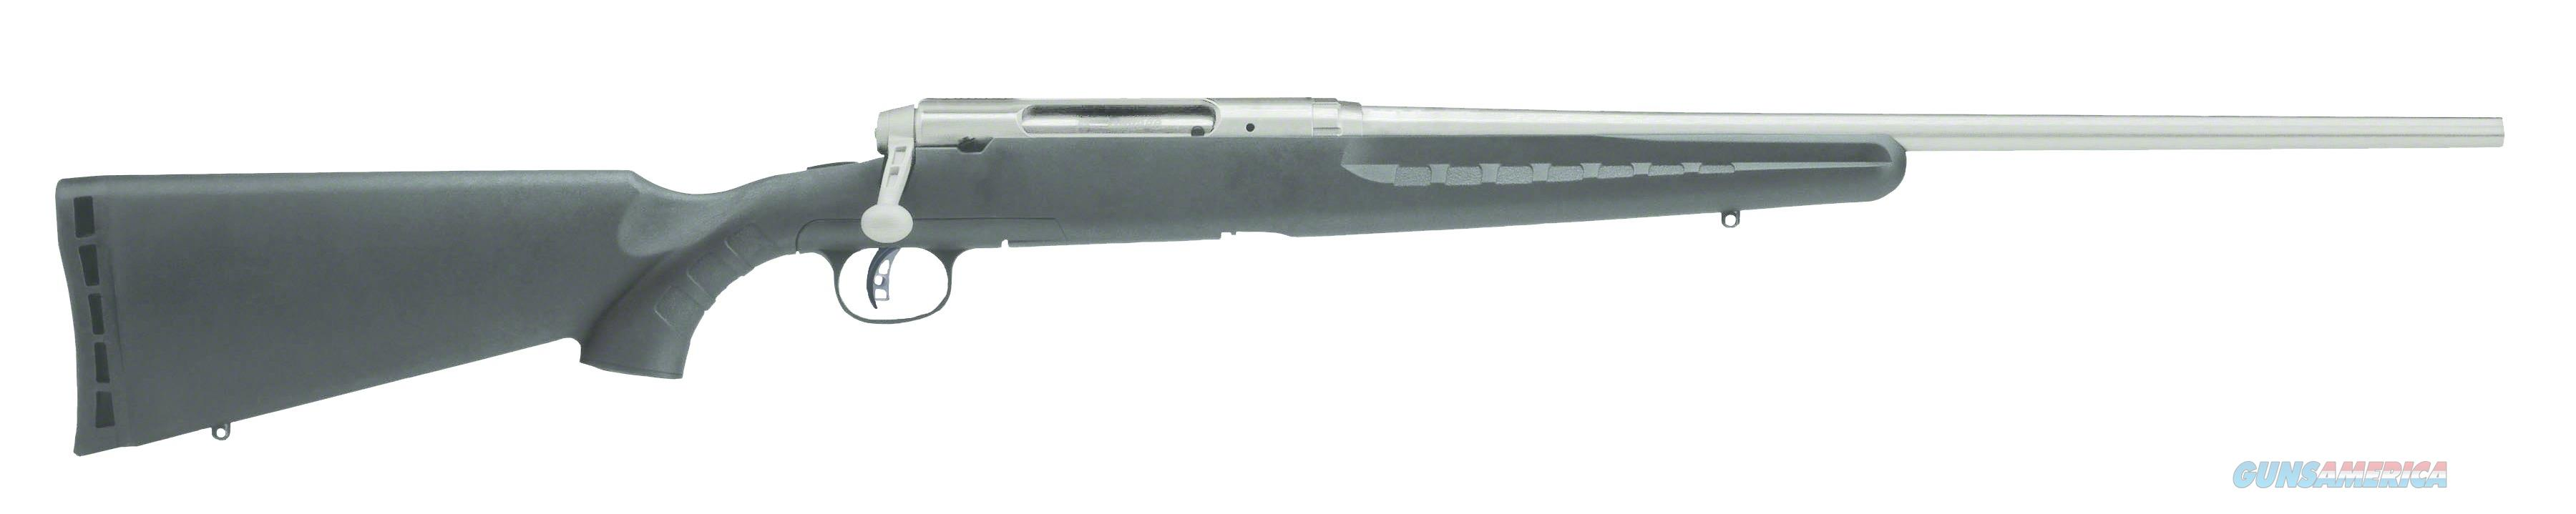 SAVAGE AXIS II BOLT ACTION RIFLE 270 WIN, RH, 22 IN, STAINLESS STEEL, SYN STK, 4+1 RND, ACCU-TRGR 22427  Guns > Rifles > S Misc Rifles